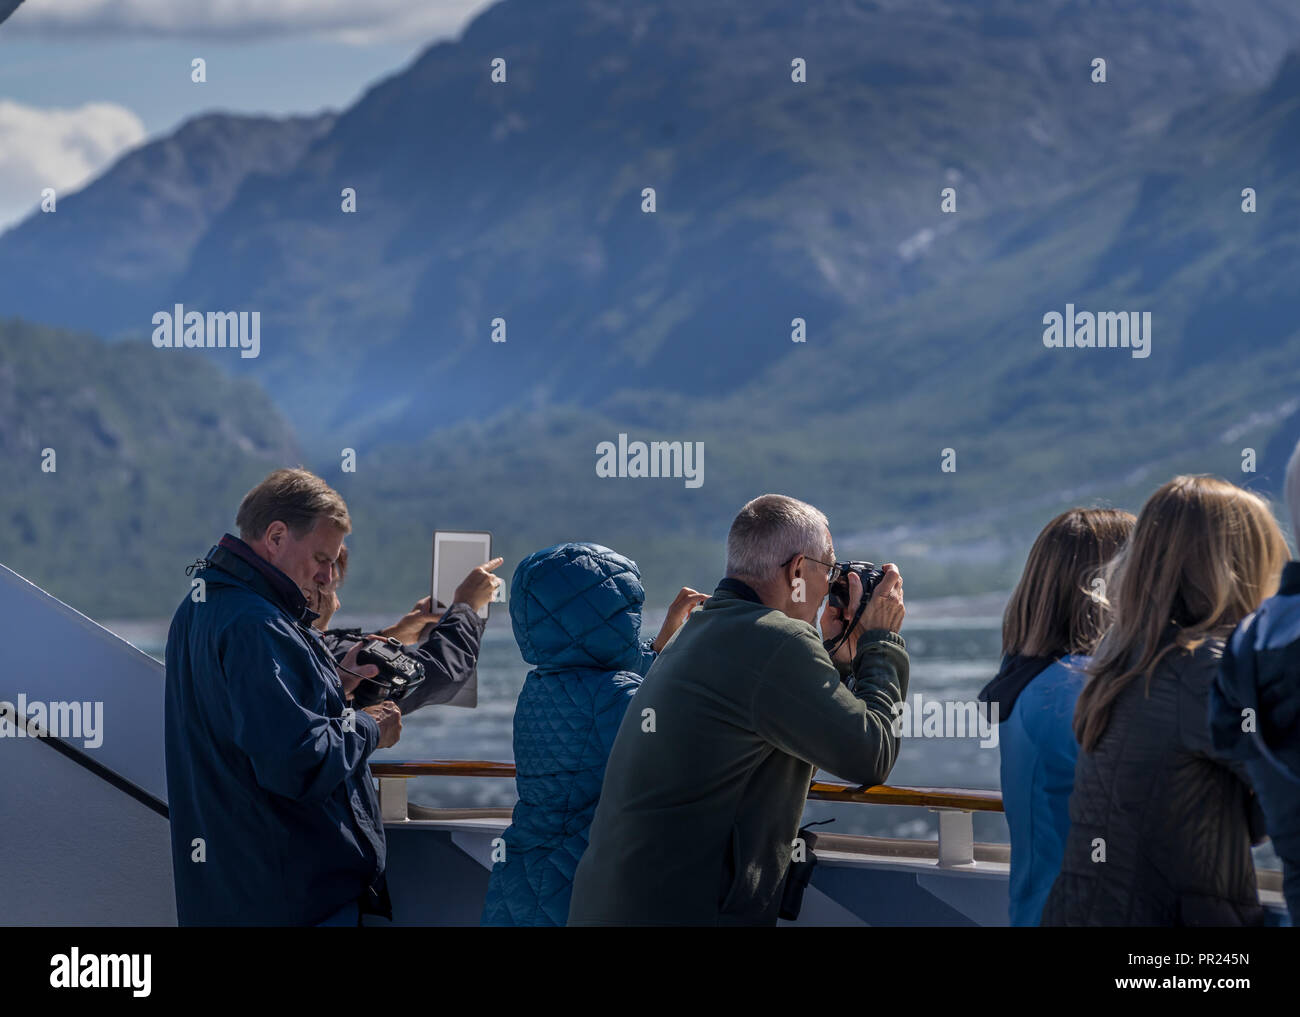 Glacier Bay Alaska USA.  Aug 17, 2018 - People get ready to take photos when the cruise ship approching to the Glacier Bay - Stock Image